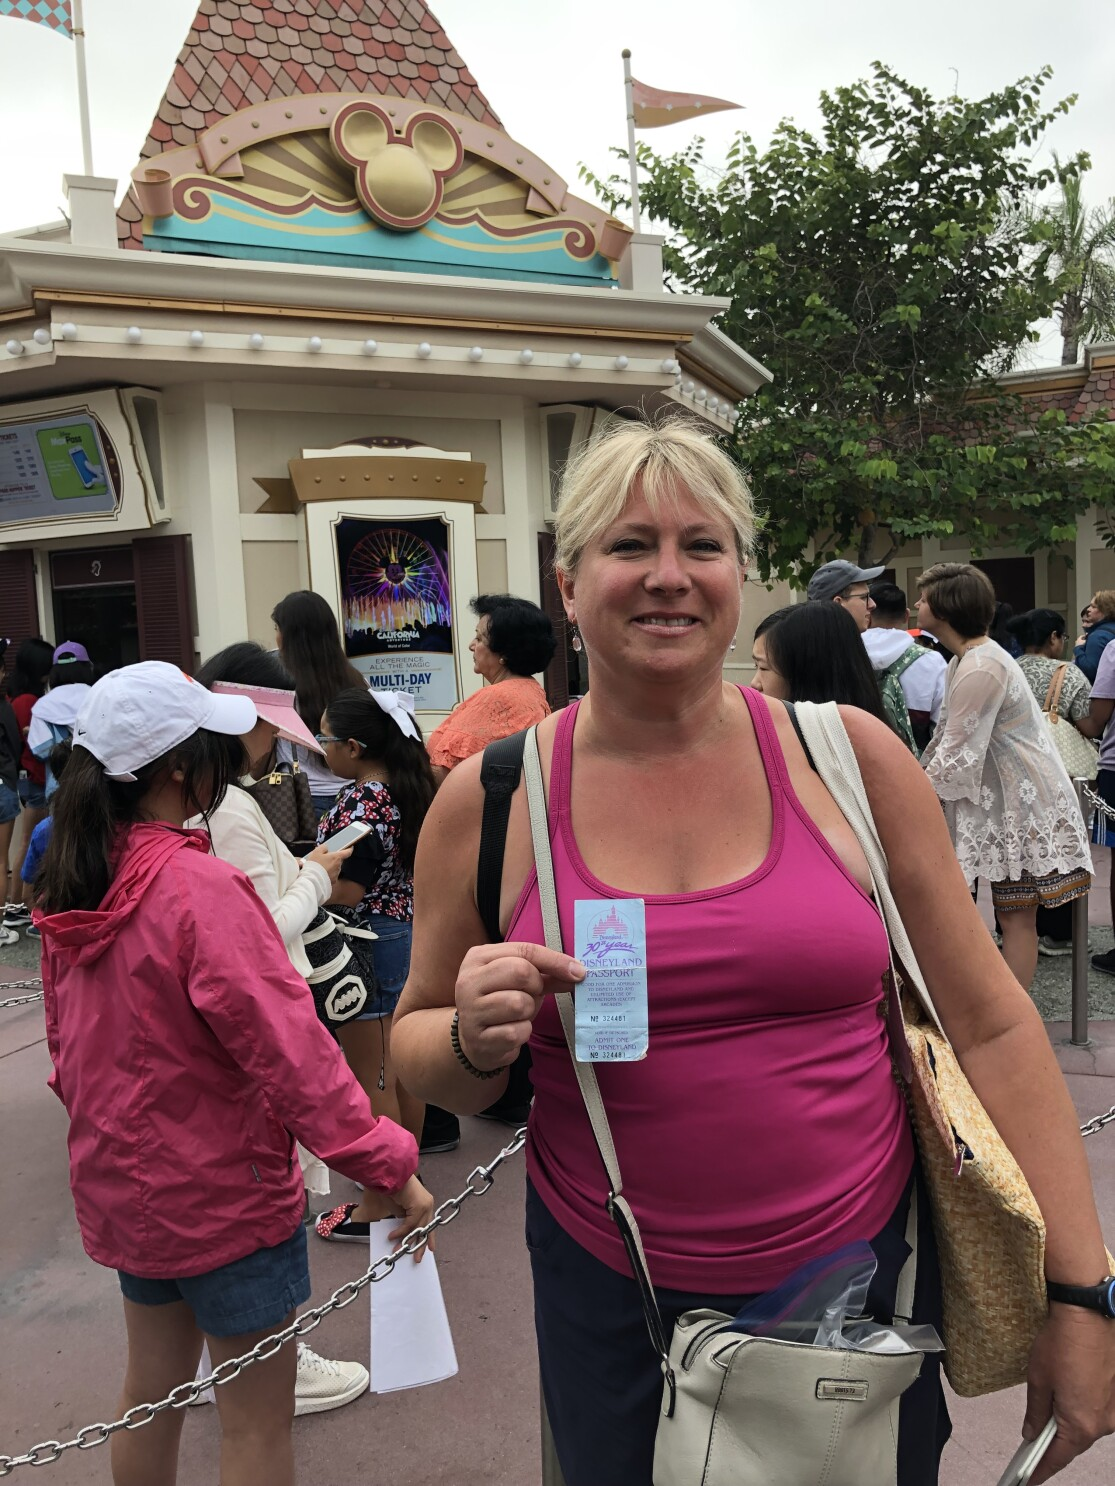 She won a free Disneyland ticket — 34 years later, the park let her use it